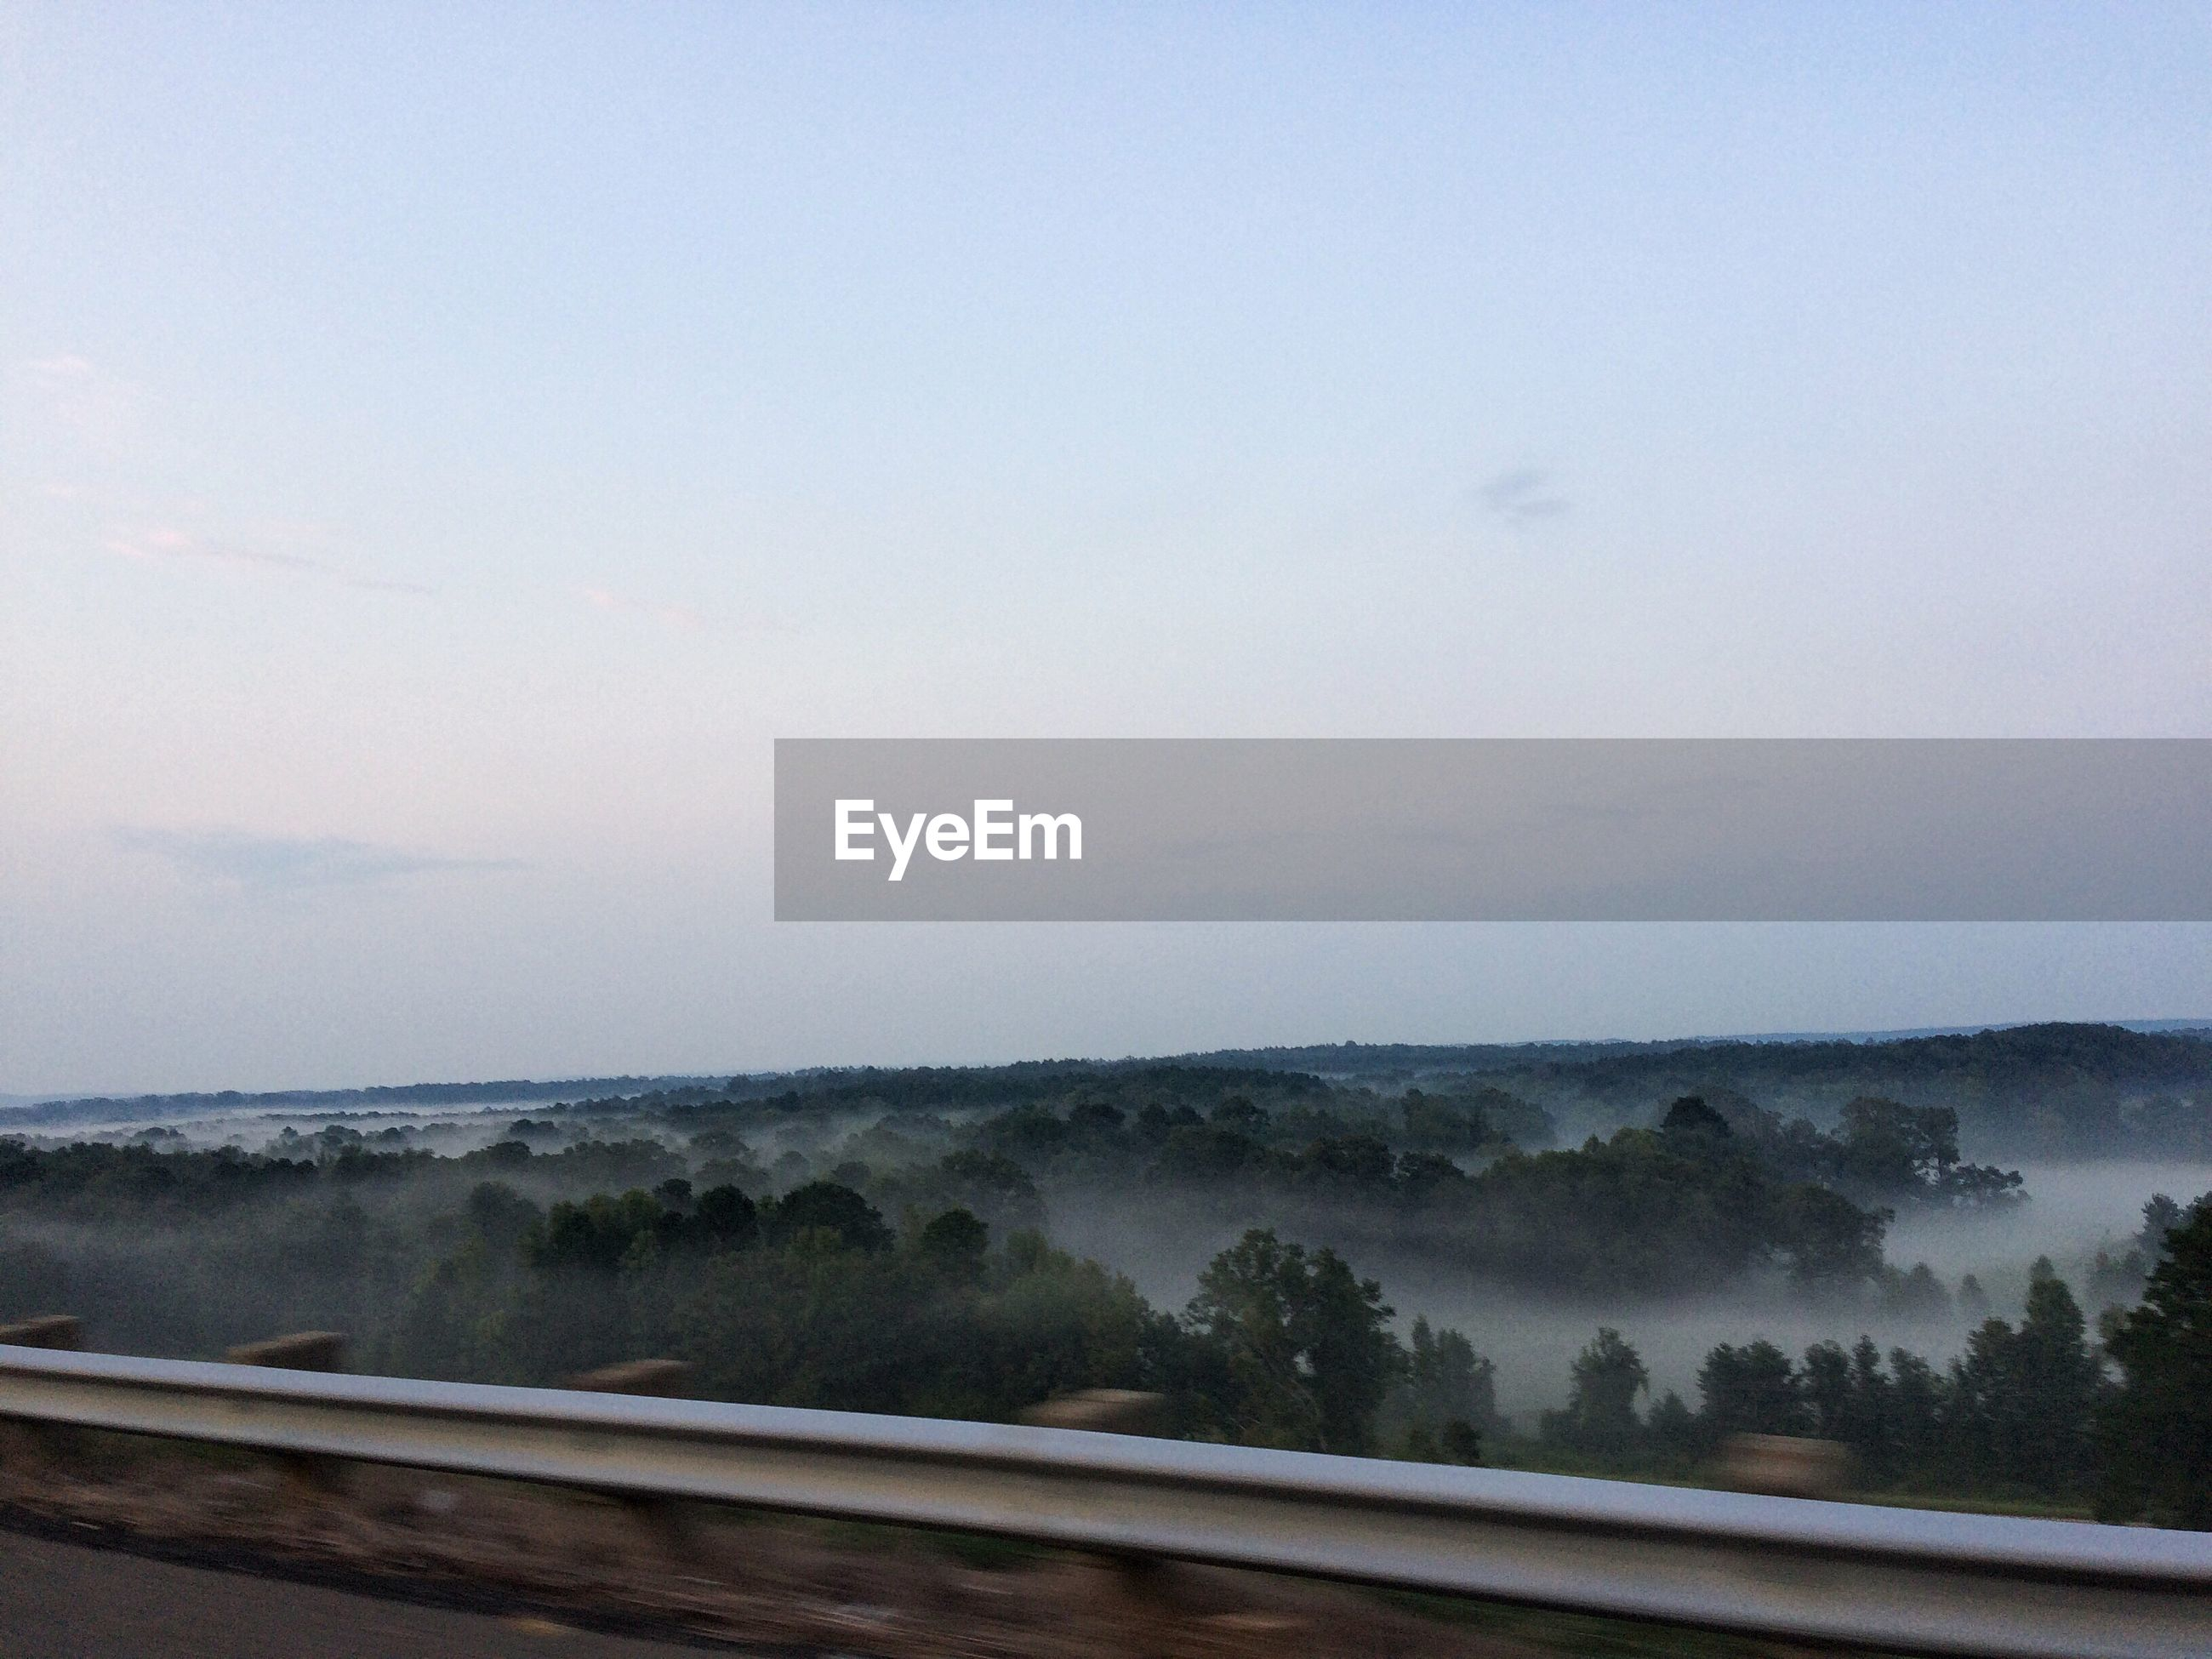 sky, transportation, no people, nature, road, day, tree, scenics, beauty in nature, outdoors, landscape, water